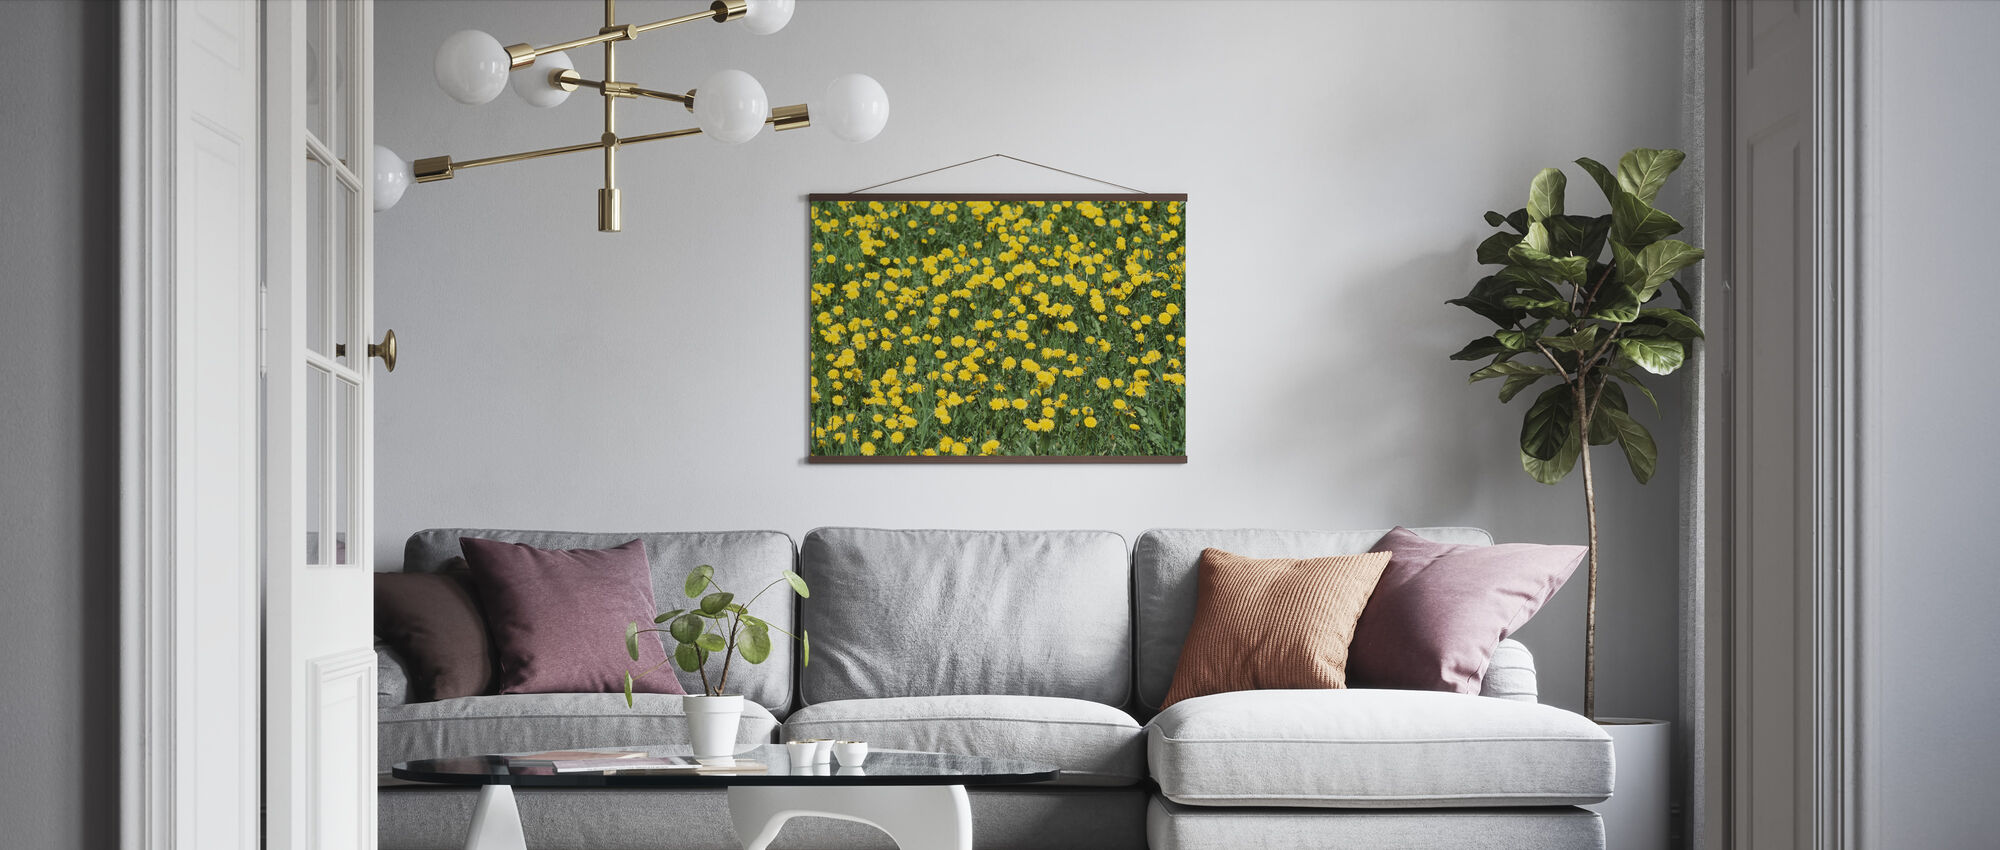 Dandelion and Grass - Poster - Living Room